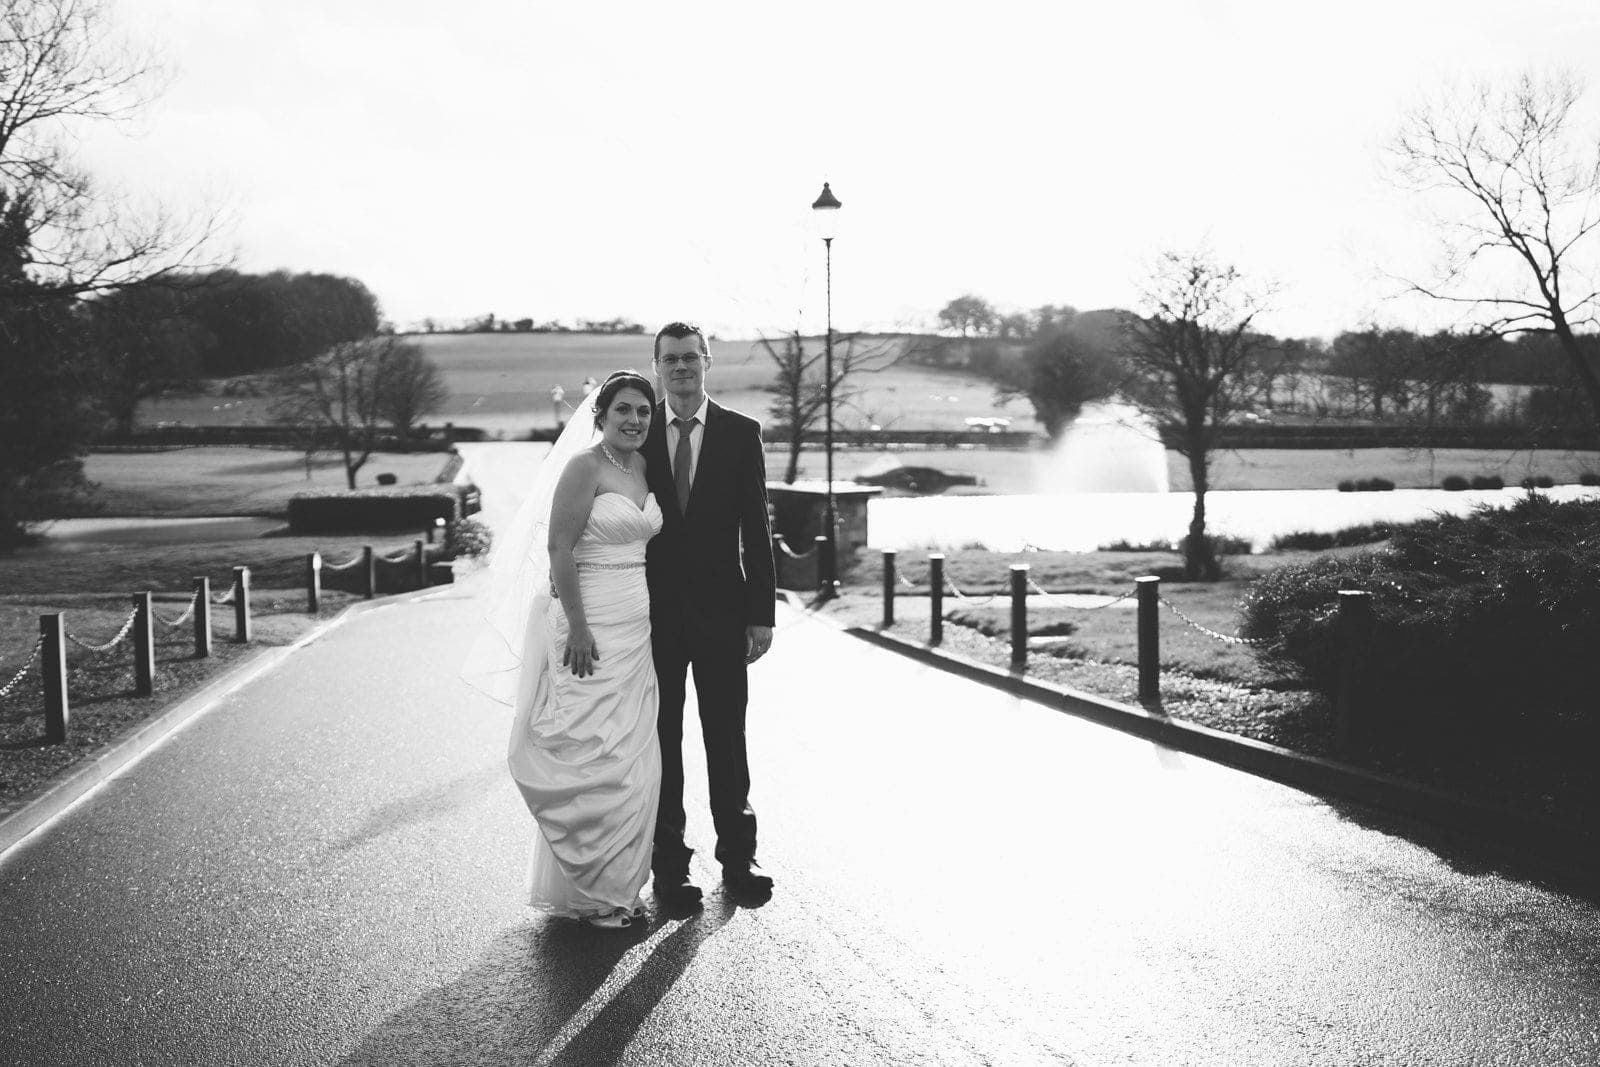 chesterfield wedding photographer, derby weddings, horlsey lodge